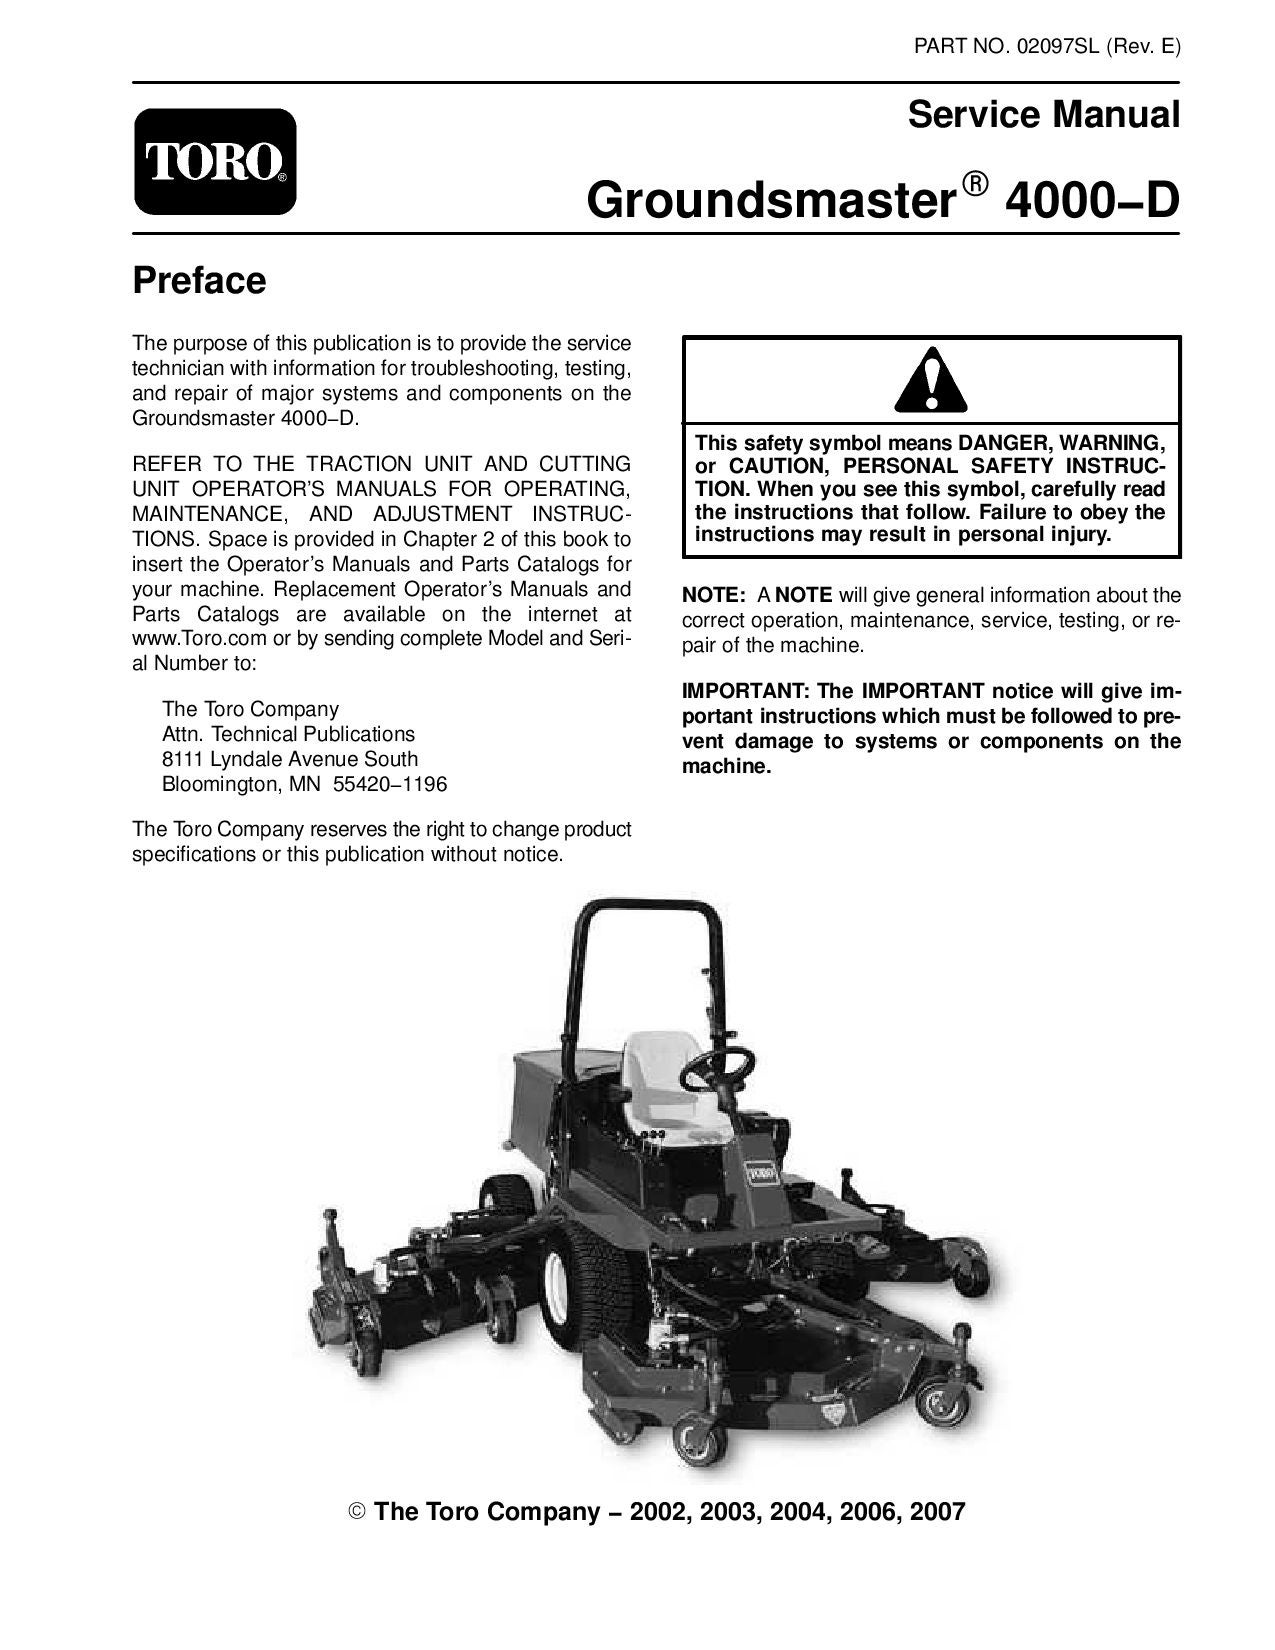 hight resolution of 02097sl pdf groundsmaster 4000 d model 30410 rev e dec 2007 by negimachi negimachi issuu